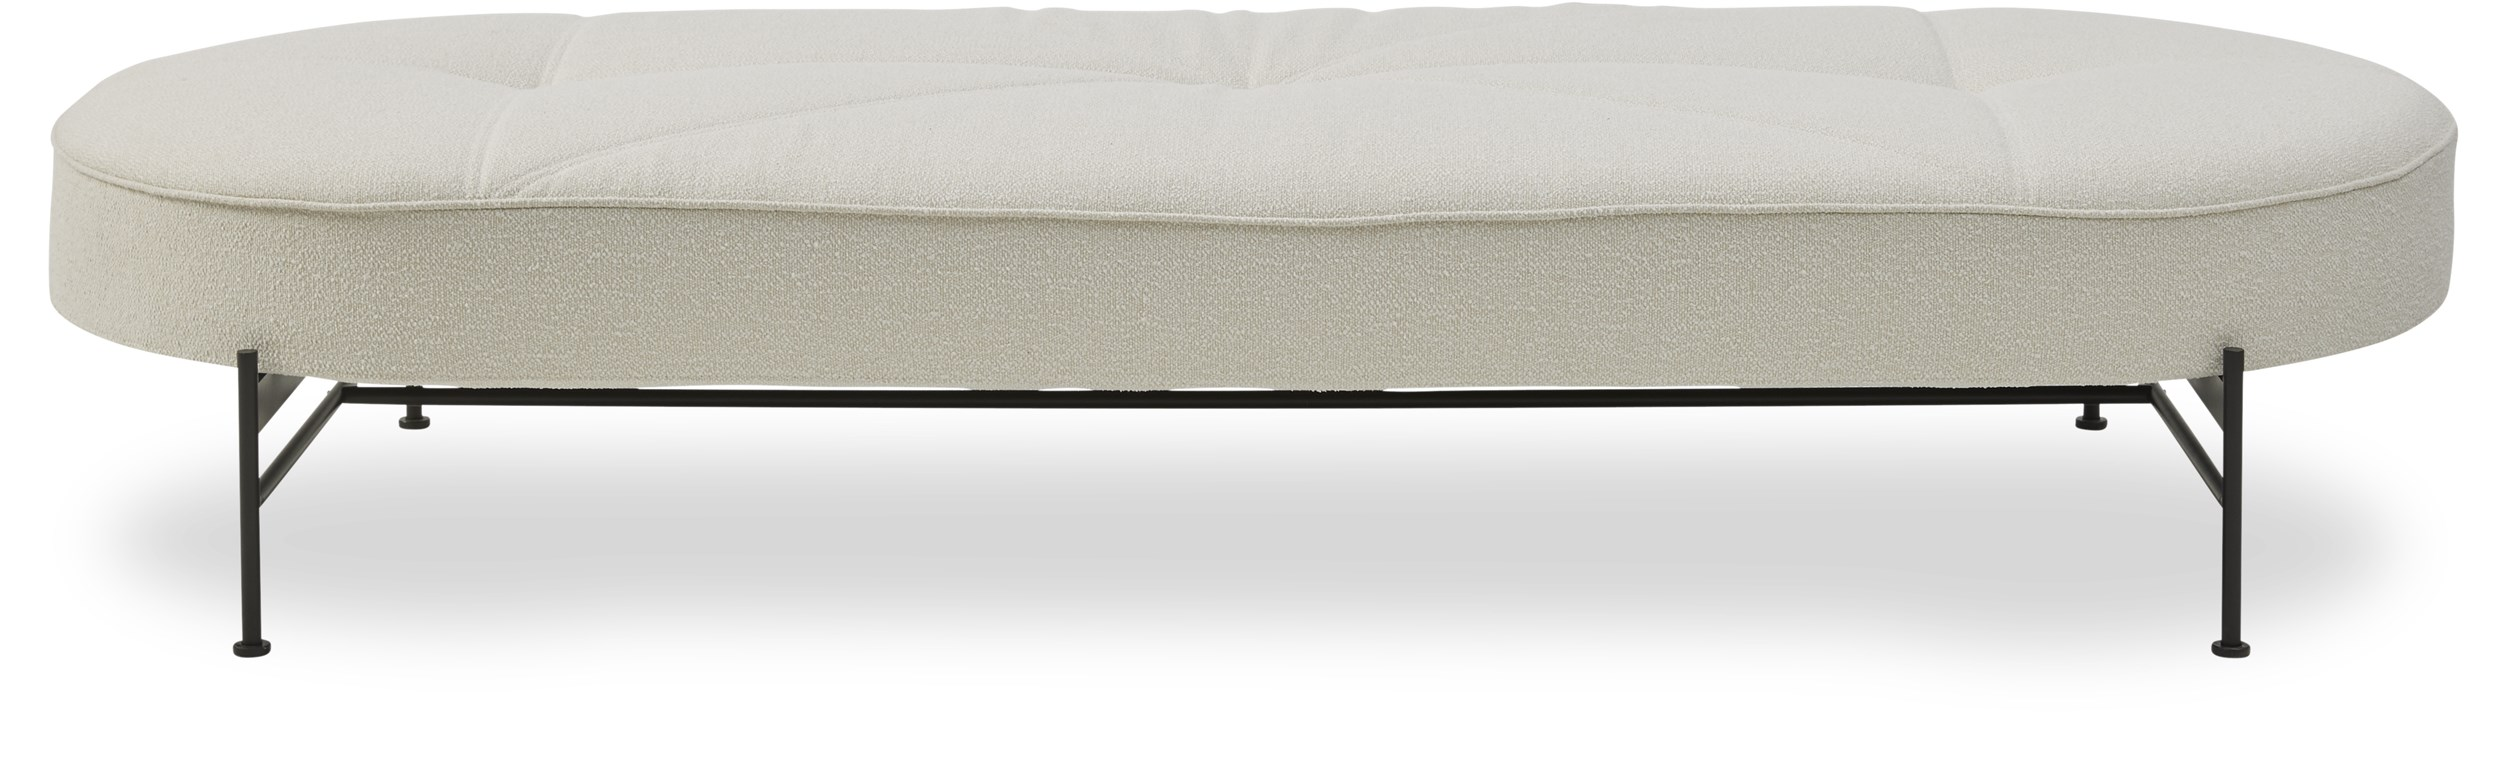 Innovation Living - Linna Daybed - Bouclé 531 Off white og stel i sort metal